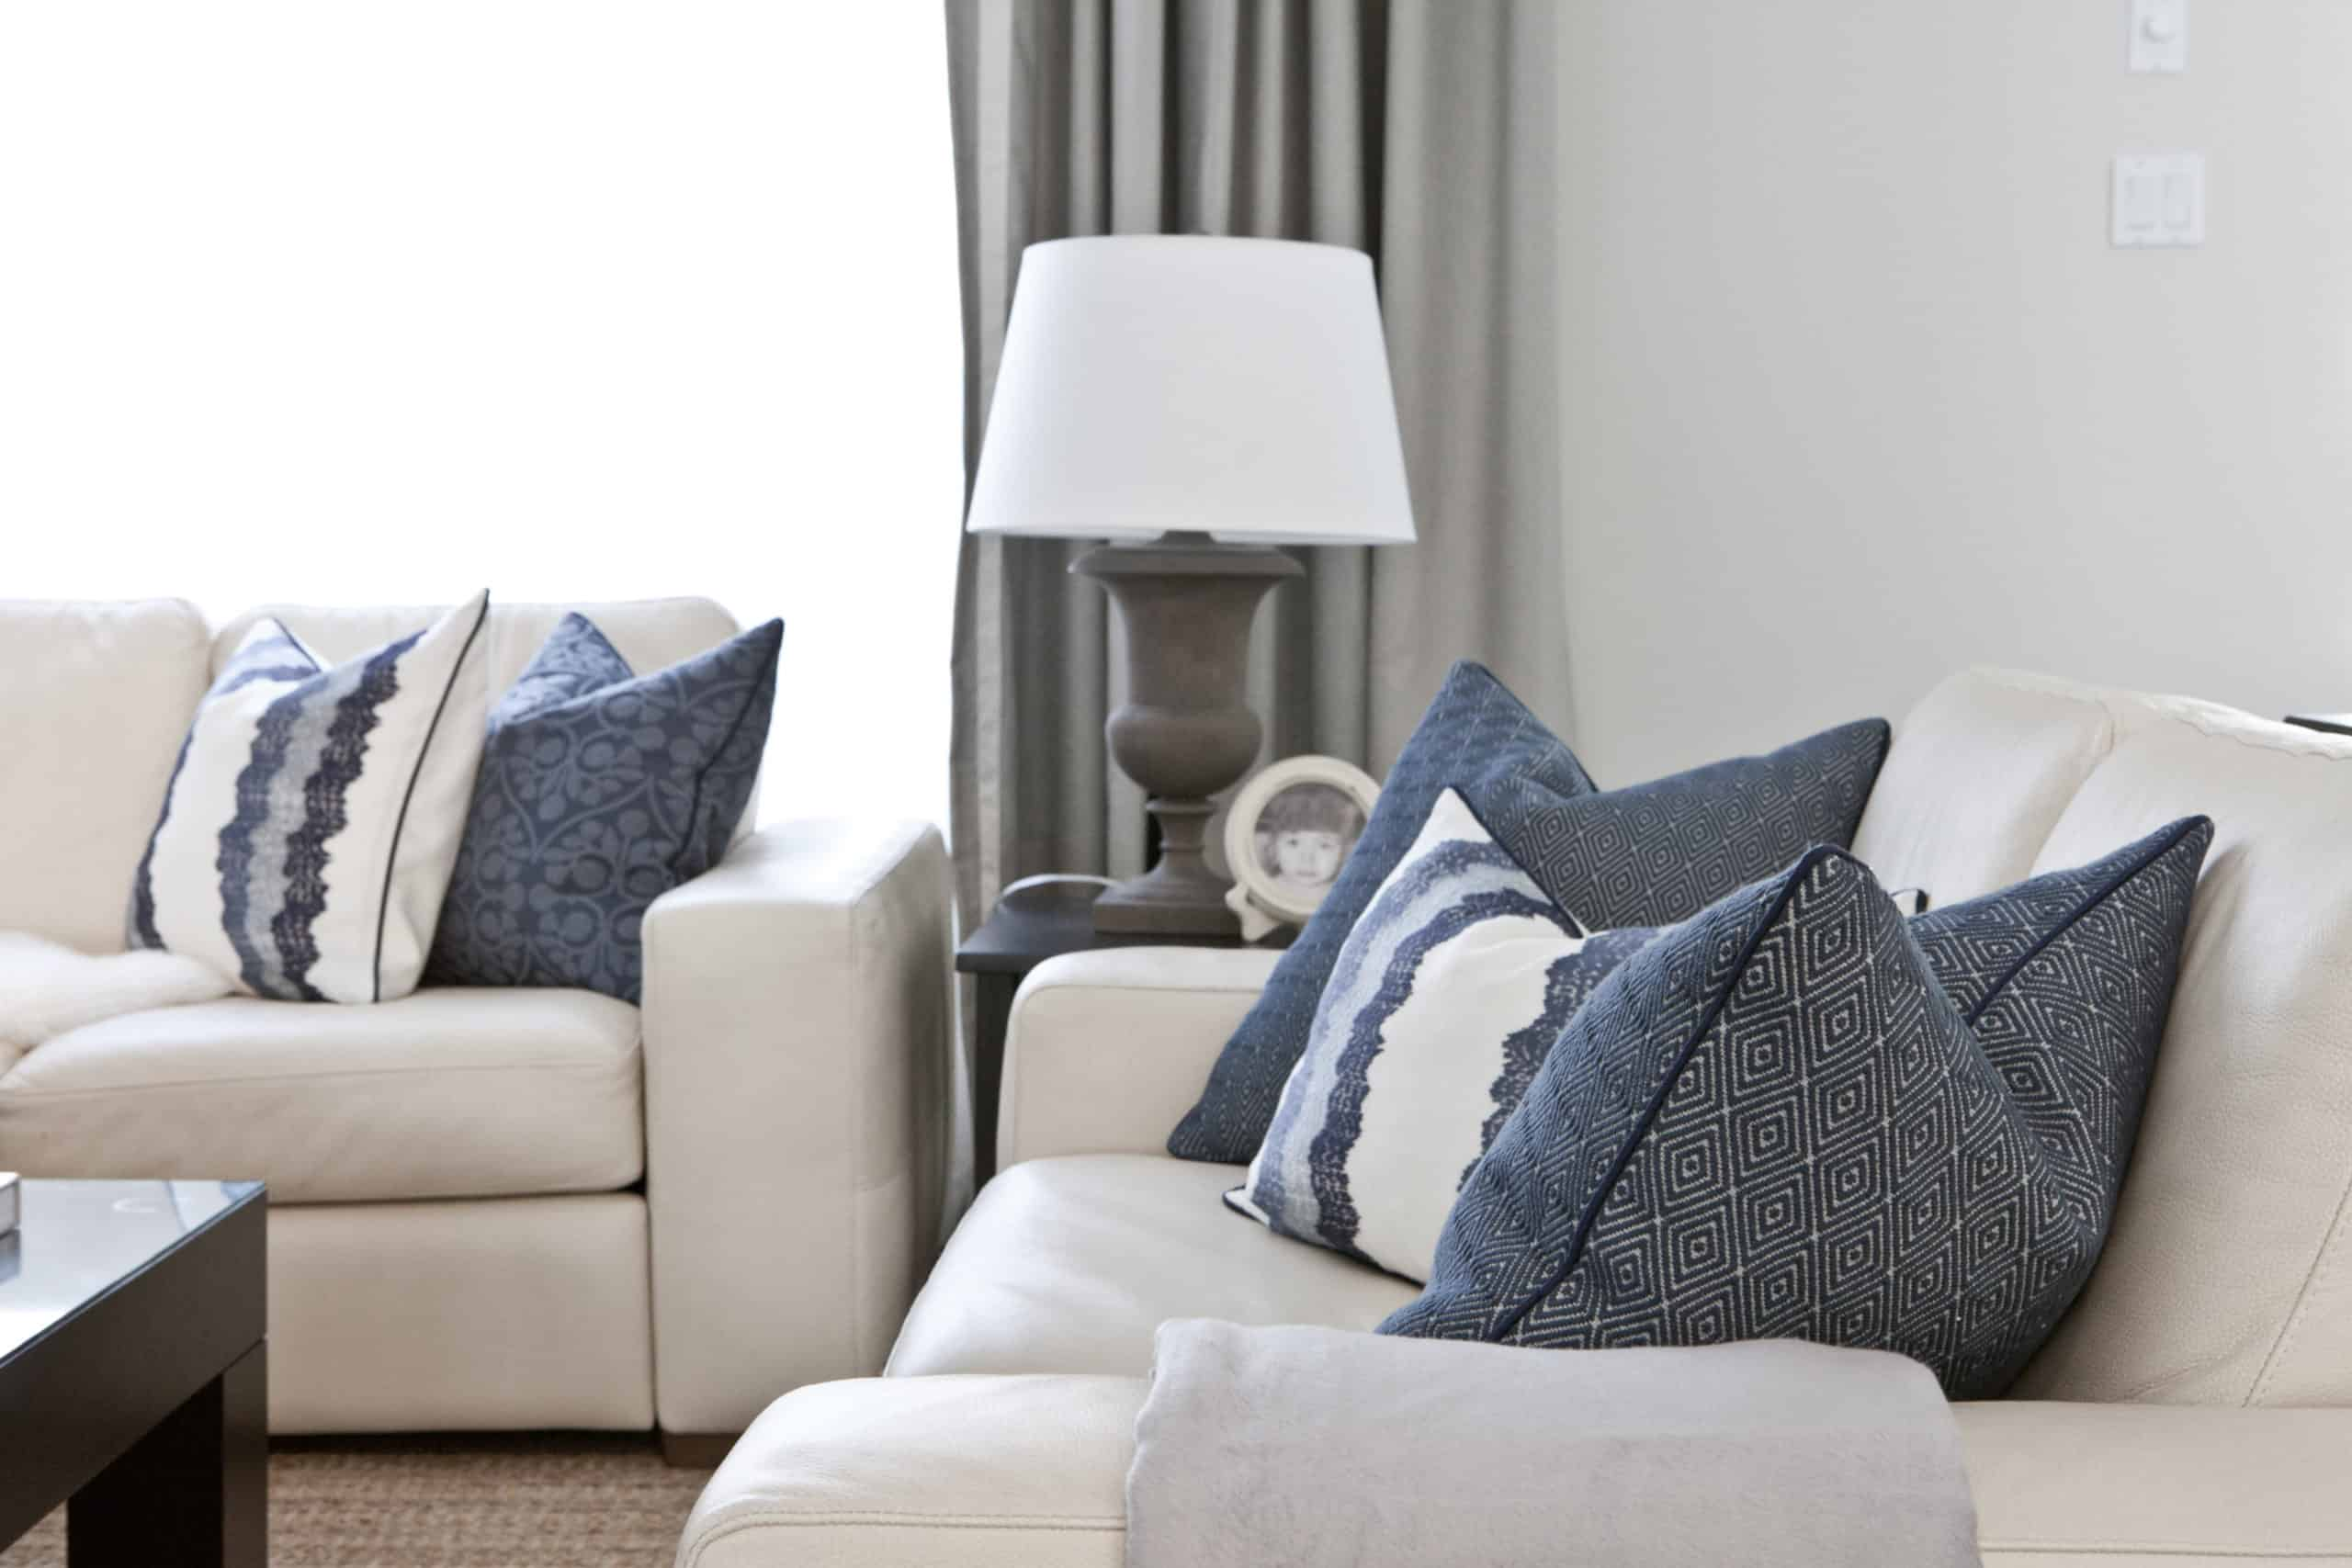 Blue pillows at the end of a white couch